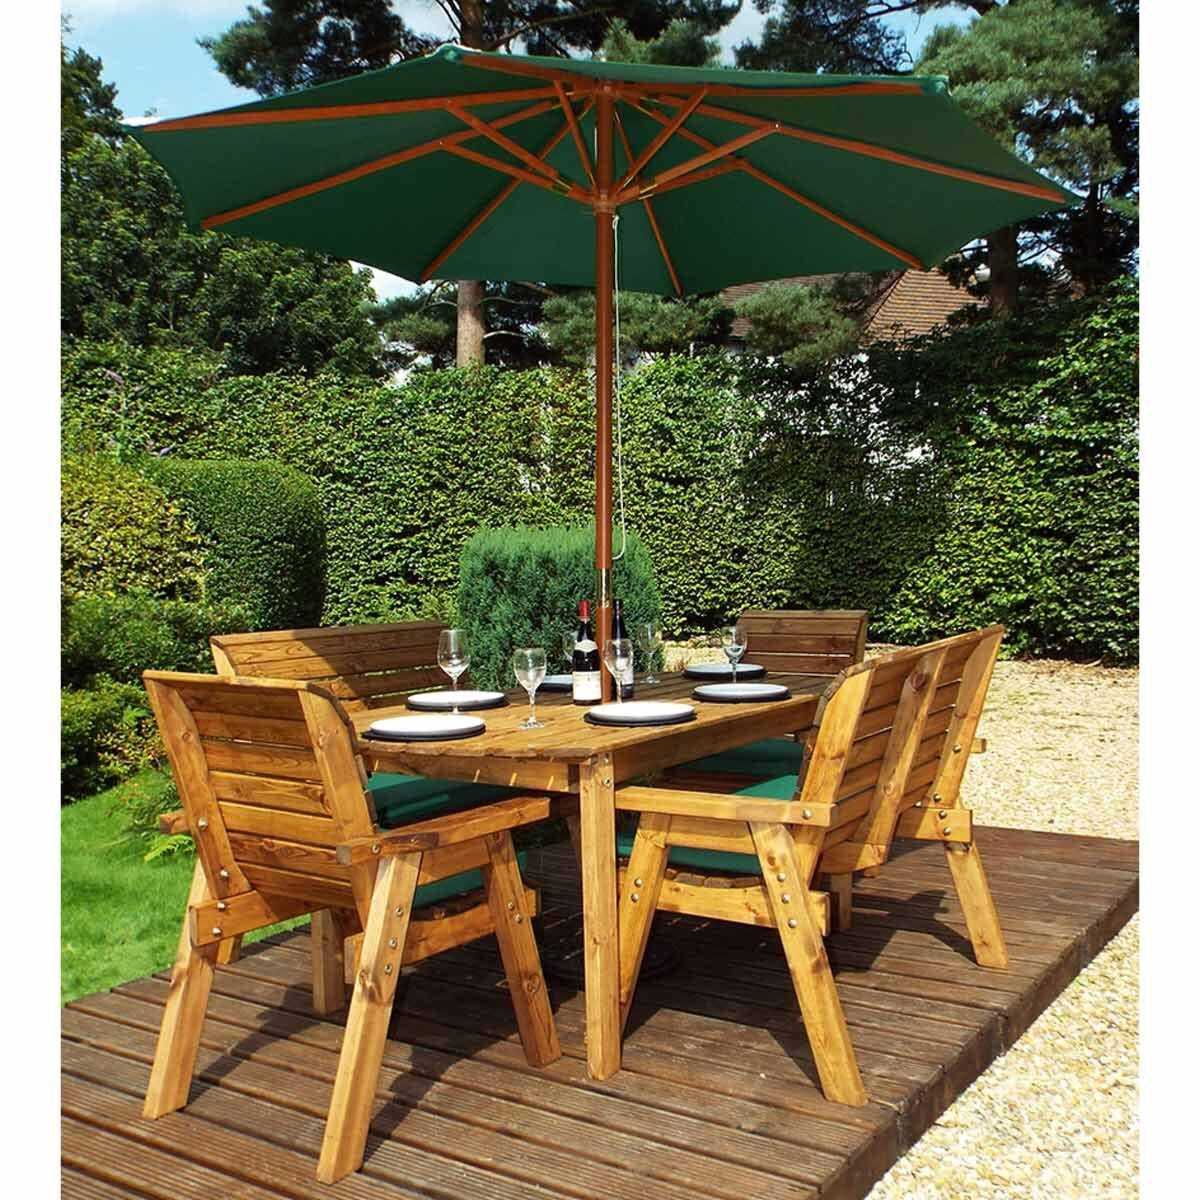 Charles Taylor Six Seater Table Set with Benches and Parasol Green